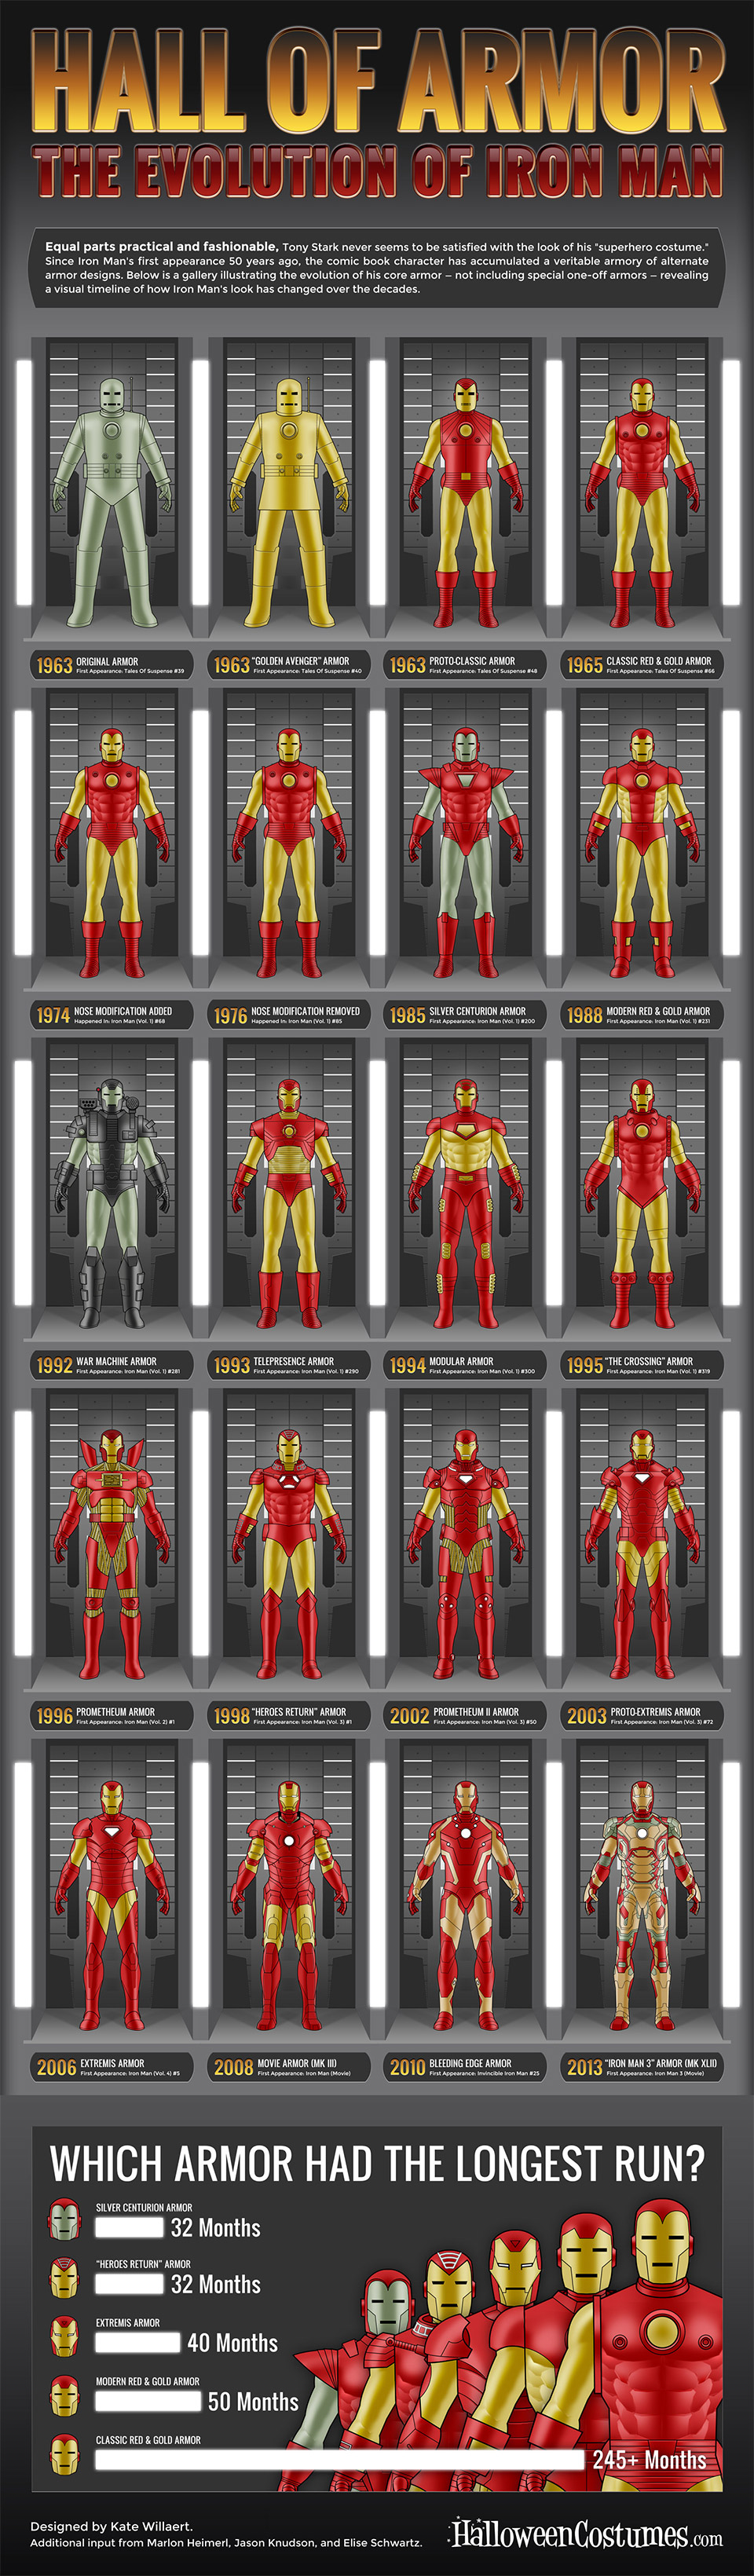 Evolution of Iron Man's Armor